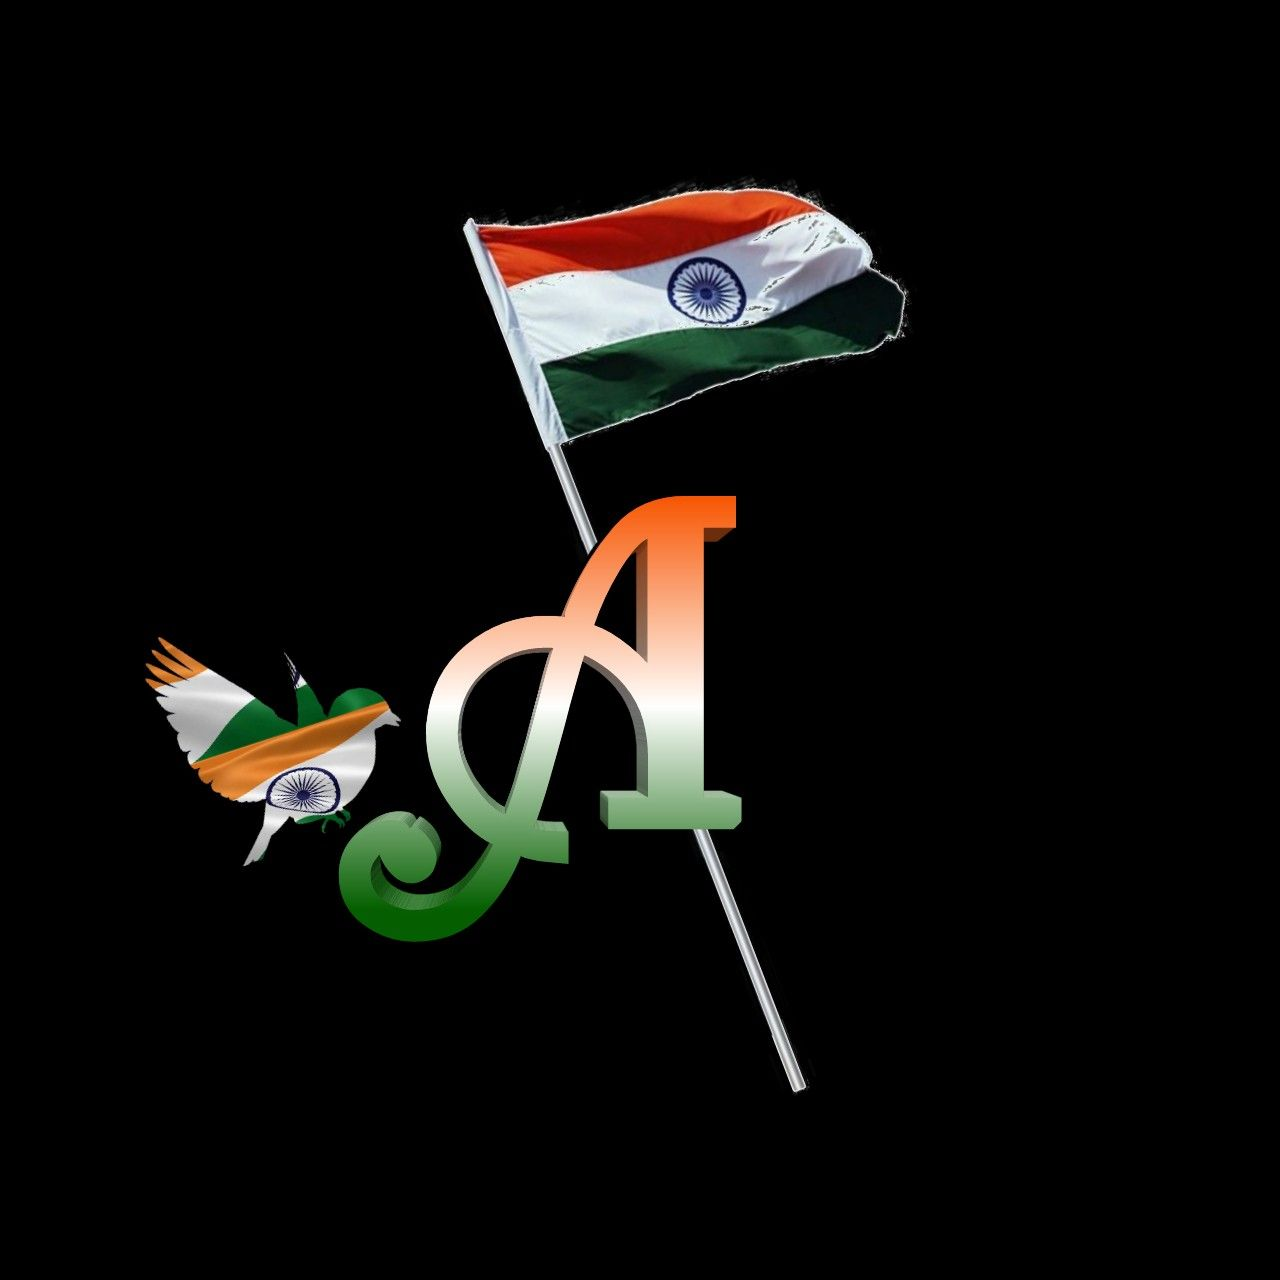 Pin By Dinesh Kumar On My Saves India Flag Indian Flag Wallpaper